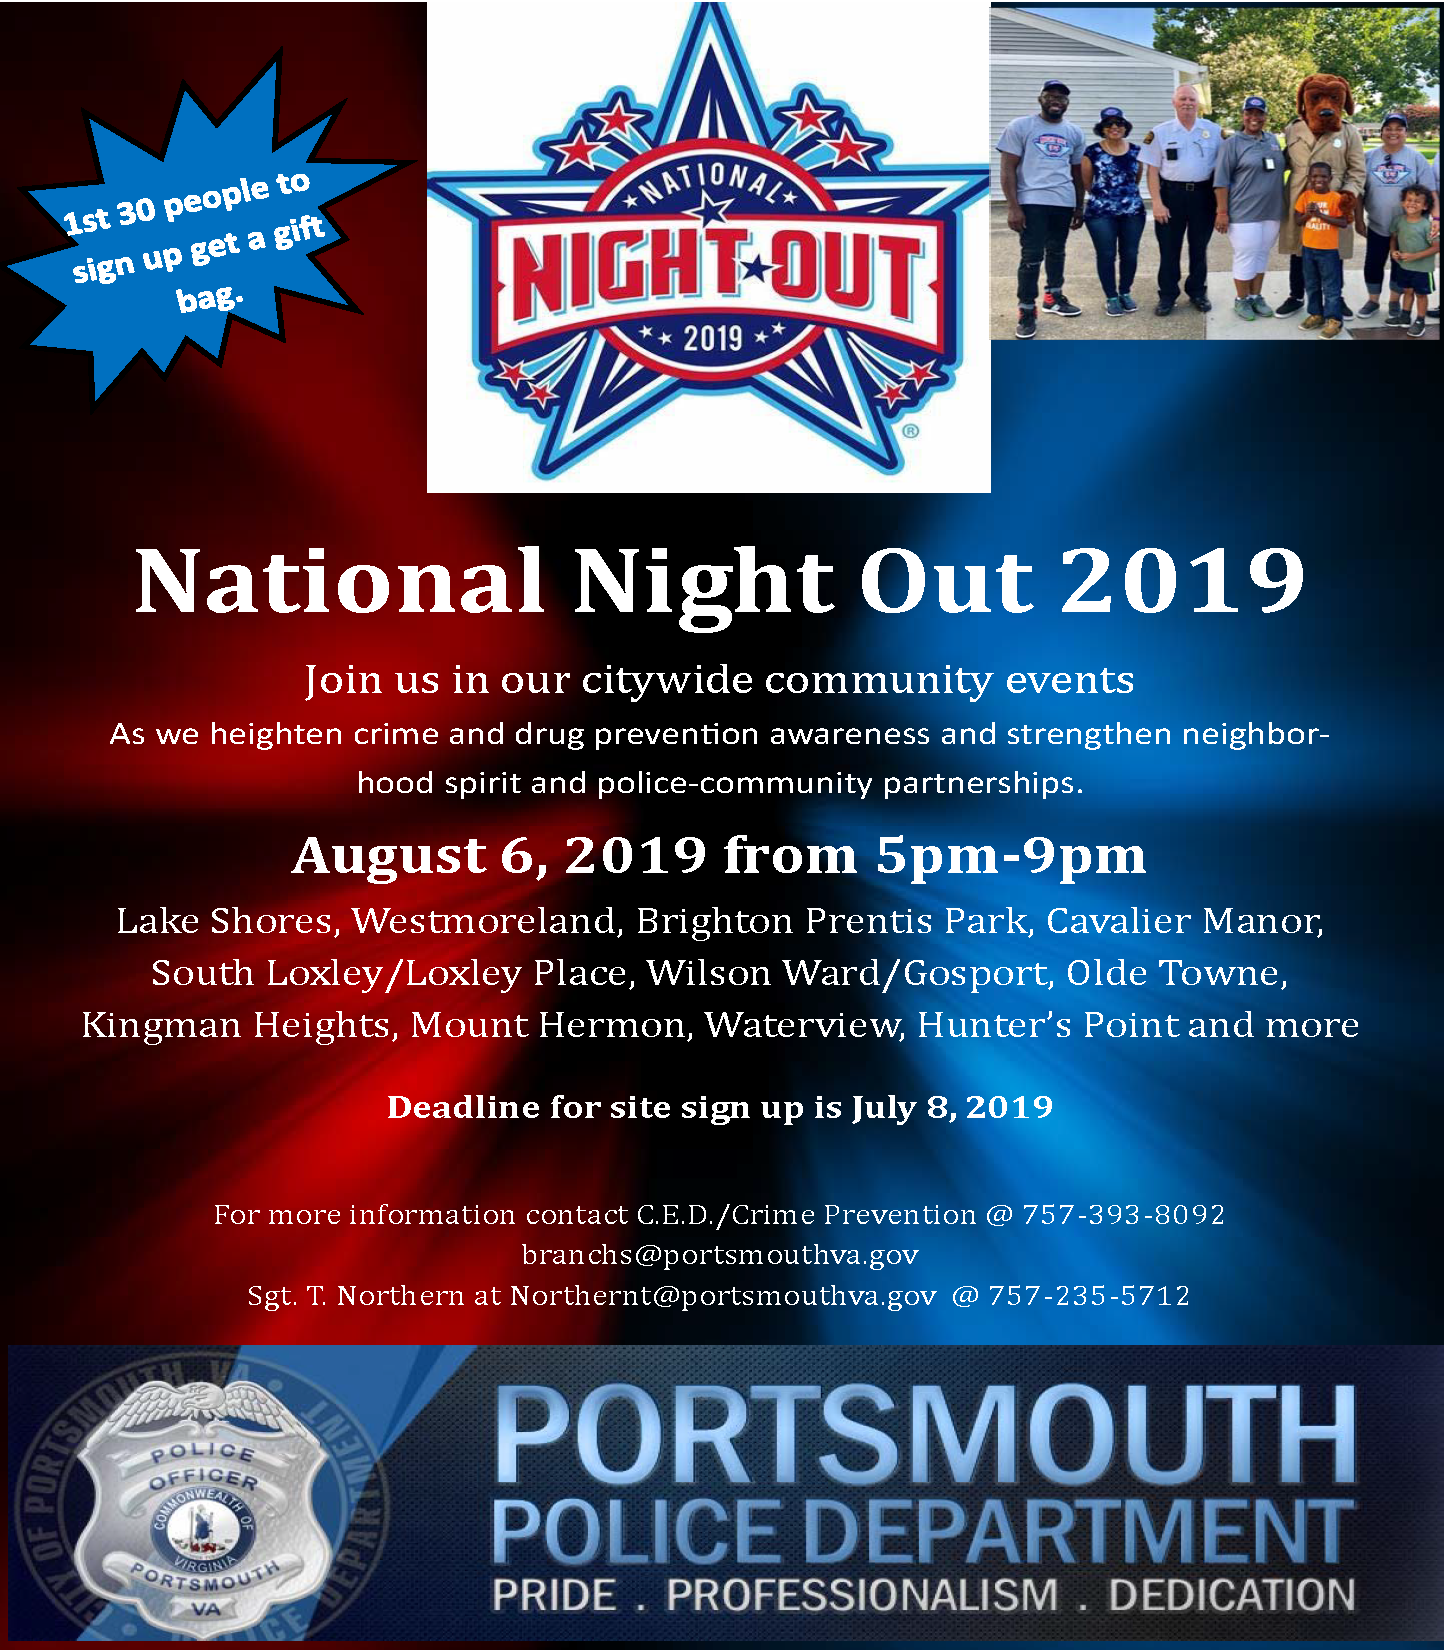 Portsmouth Police Department National Night Out 2019